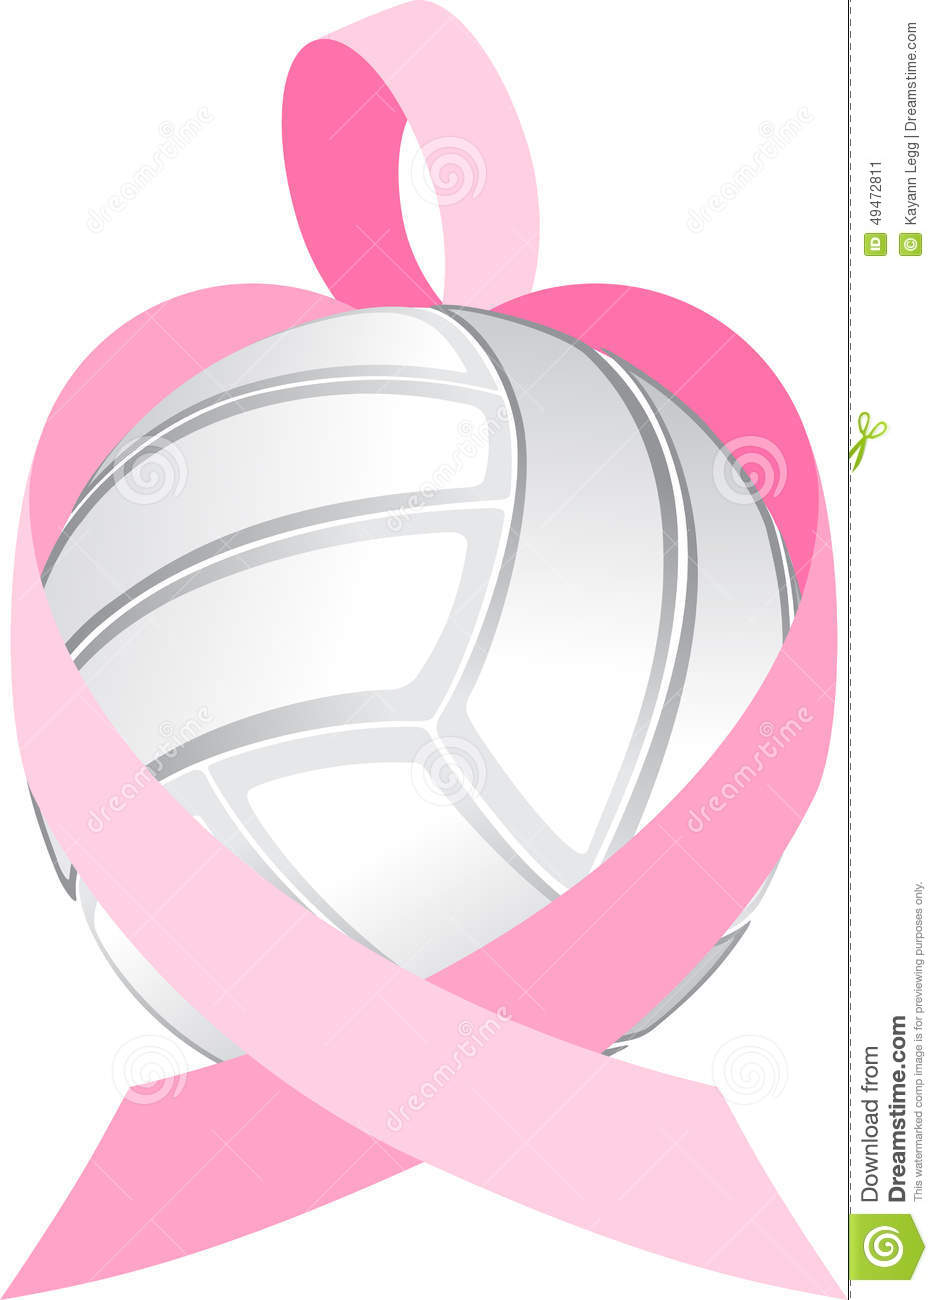 Illustration of a breast cancer ribbon forming a heart wrapped around ...